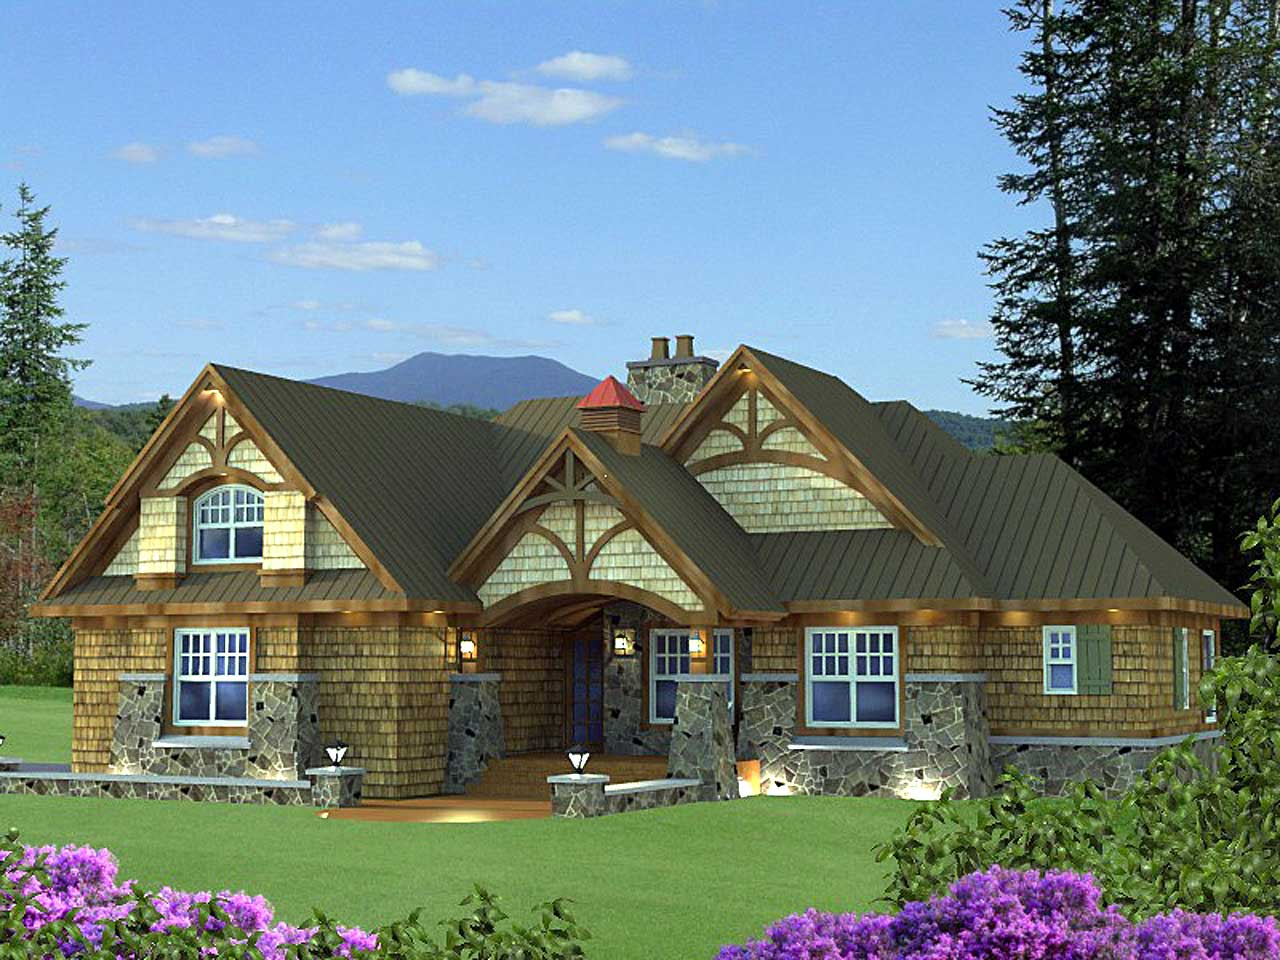 Country Style House Plans Plan: 38-509